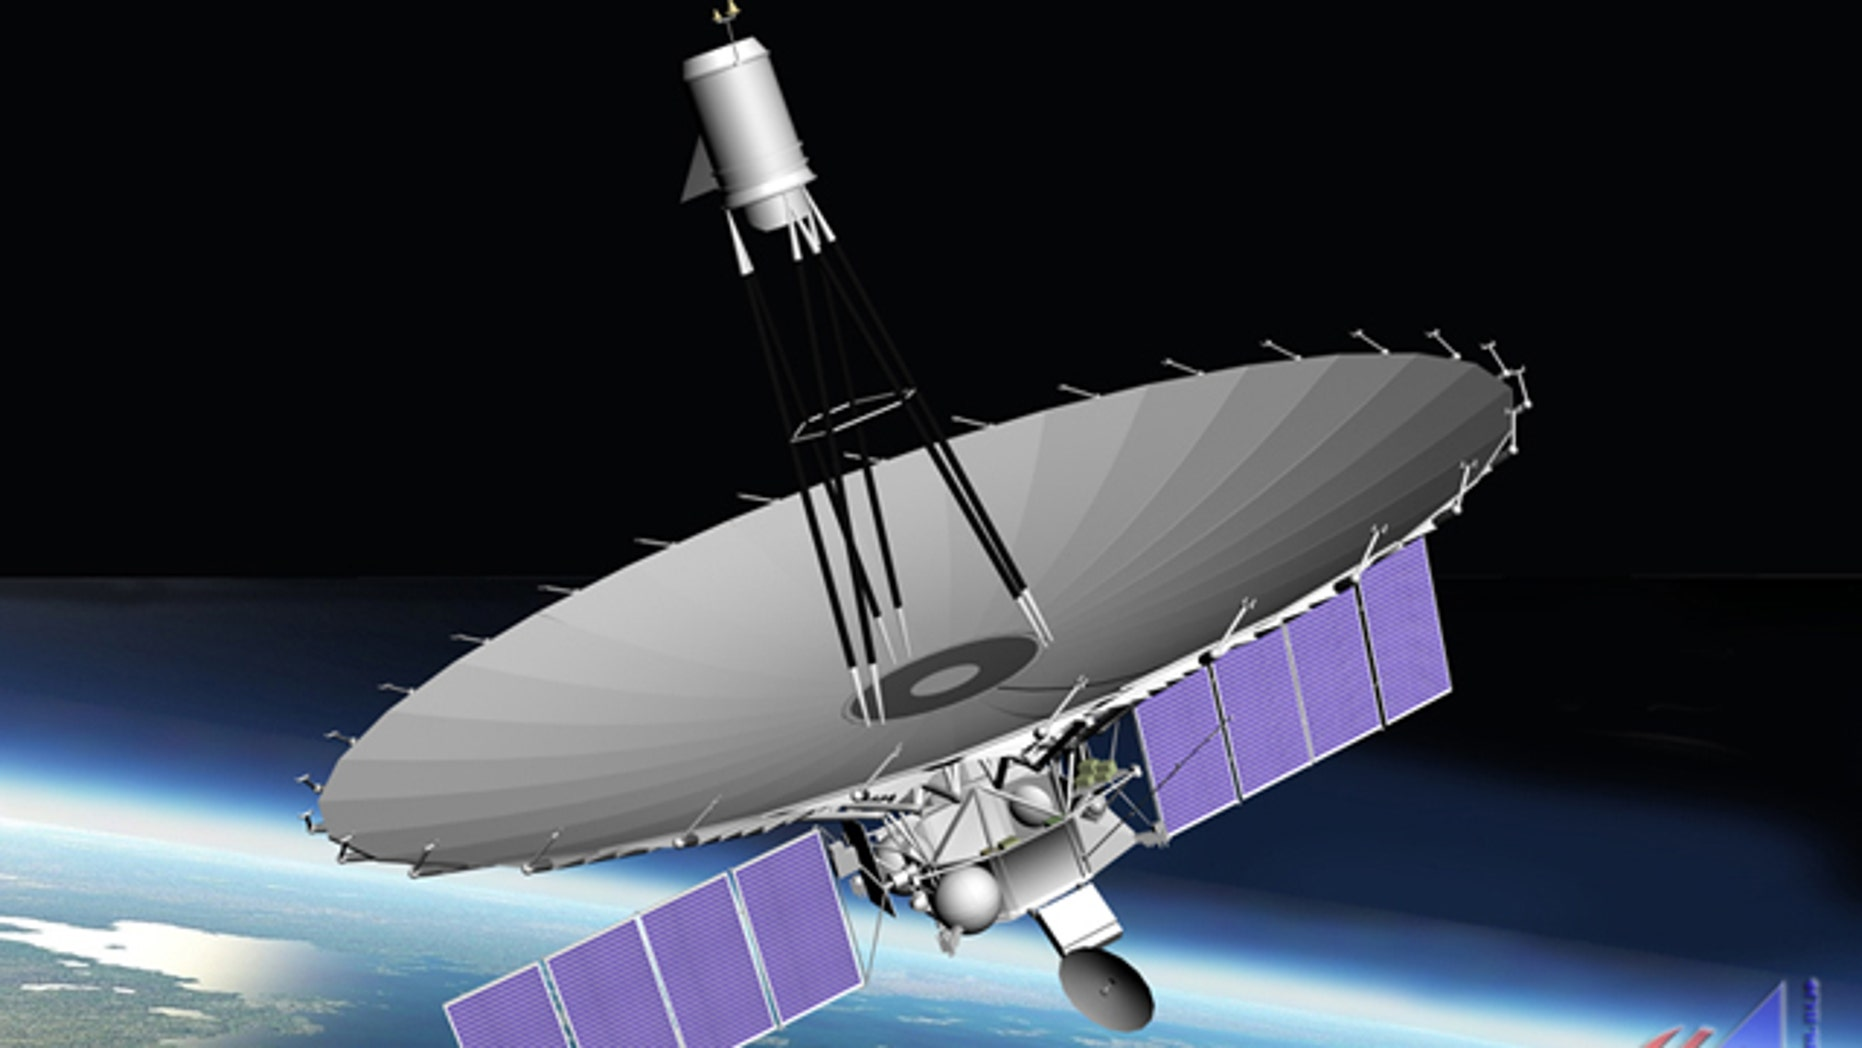 An artist's depiction of Russia's huge Spektr-R radio astronomy satellite in Earth orbit. The satellite launched on July 18, 2011.